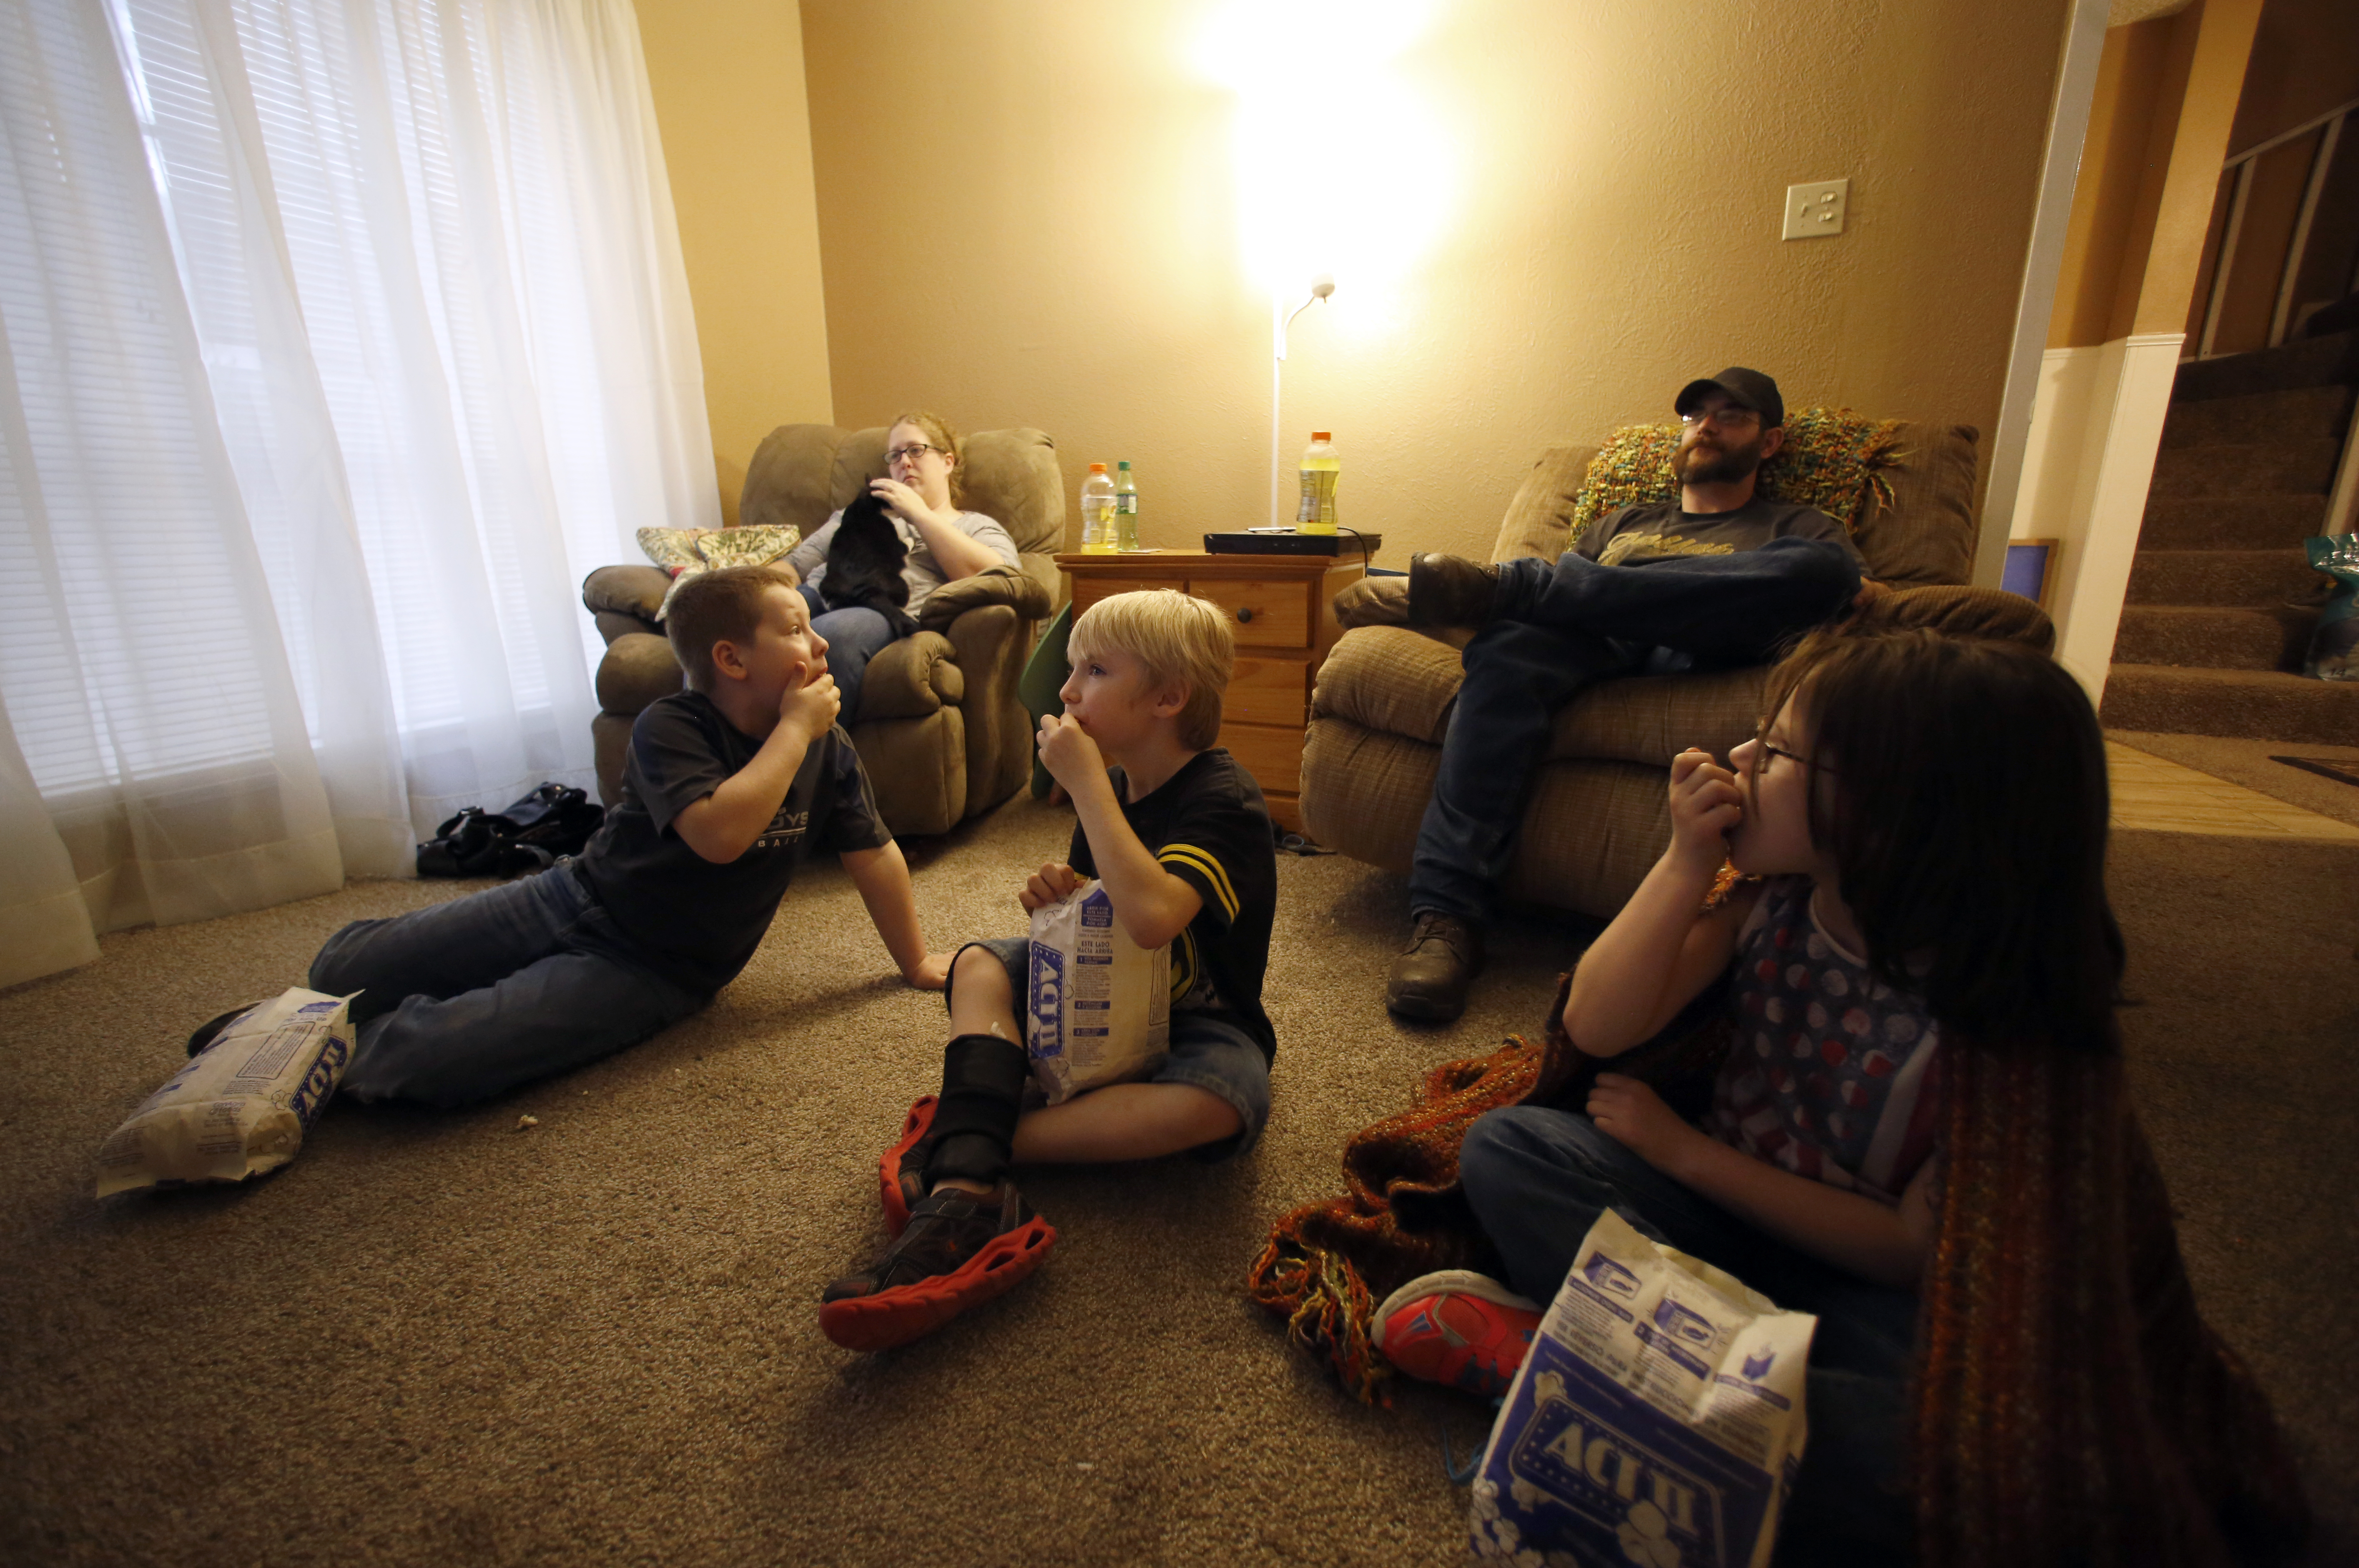 Jessica Cadick, her fiancé Charlie Beck, and their children, from left, Joshua Tucker, 9, Kaden Beck, 6, and Kairi Beck, 8, continue their tradition of family movie night at their rental house in Garland. Photo/Lara Solt